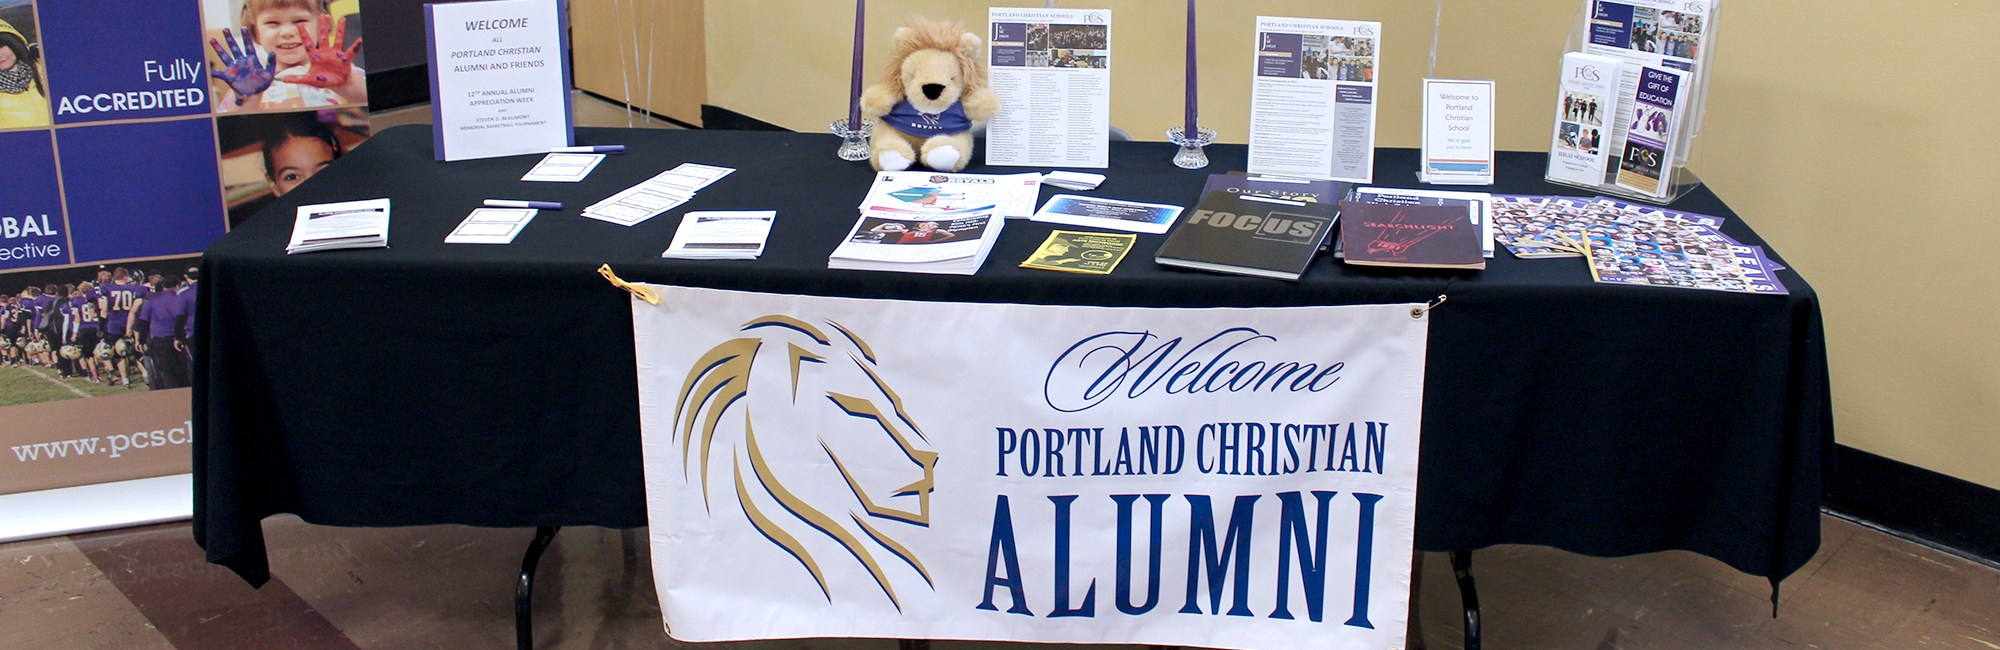 Welcome sign in the lobby for alumni week